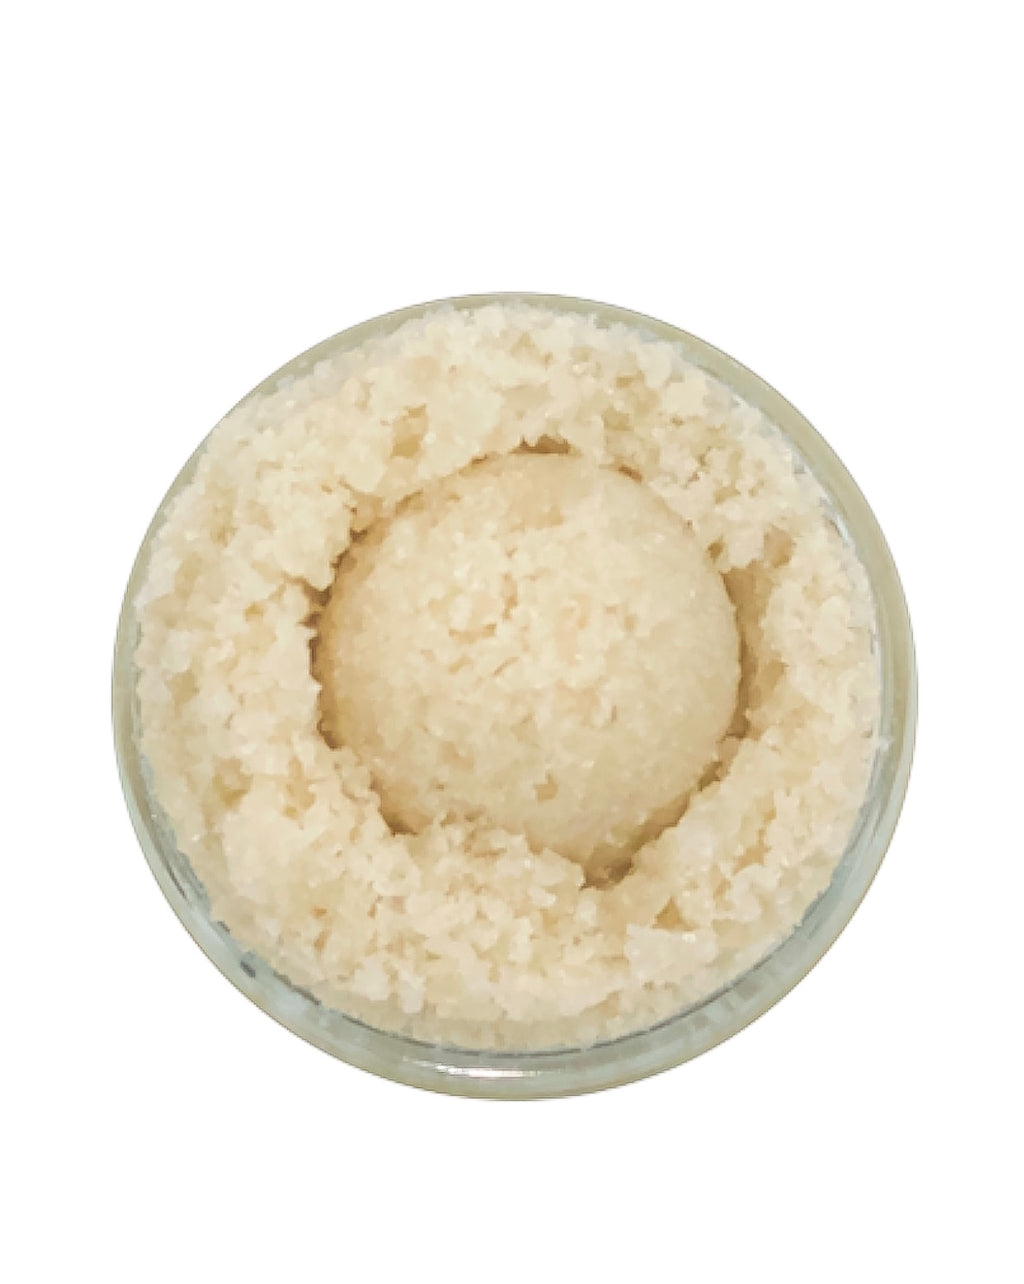 Lavender + Vanilla Exfoliating Sugar Body Polish